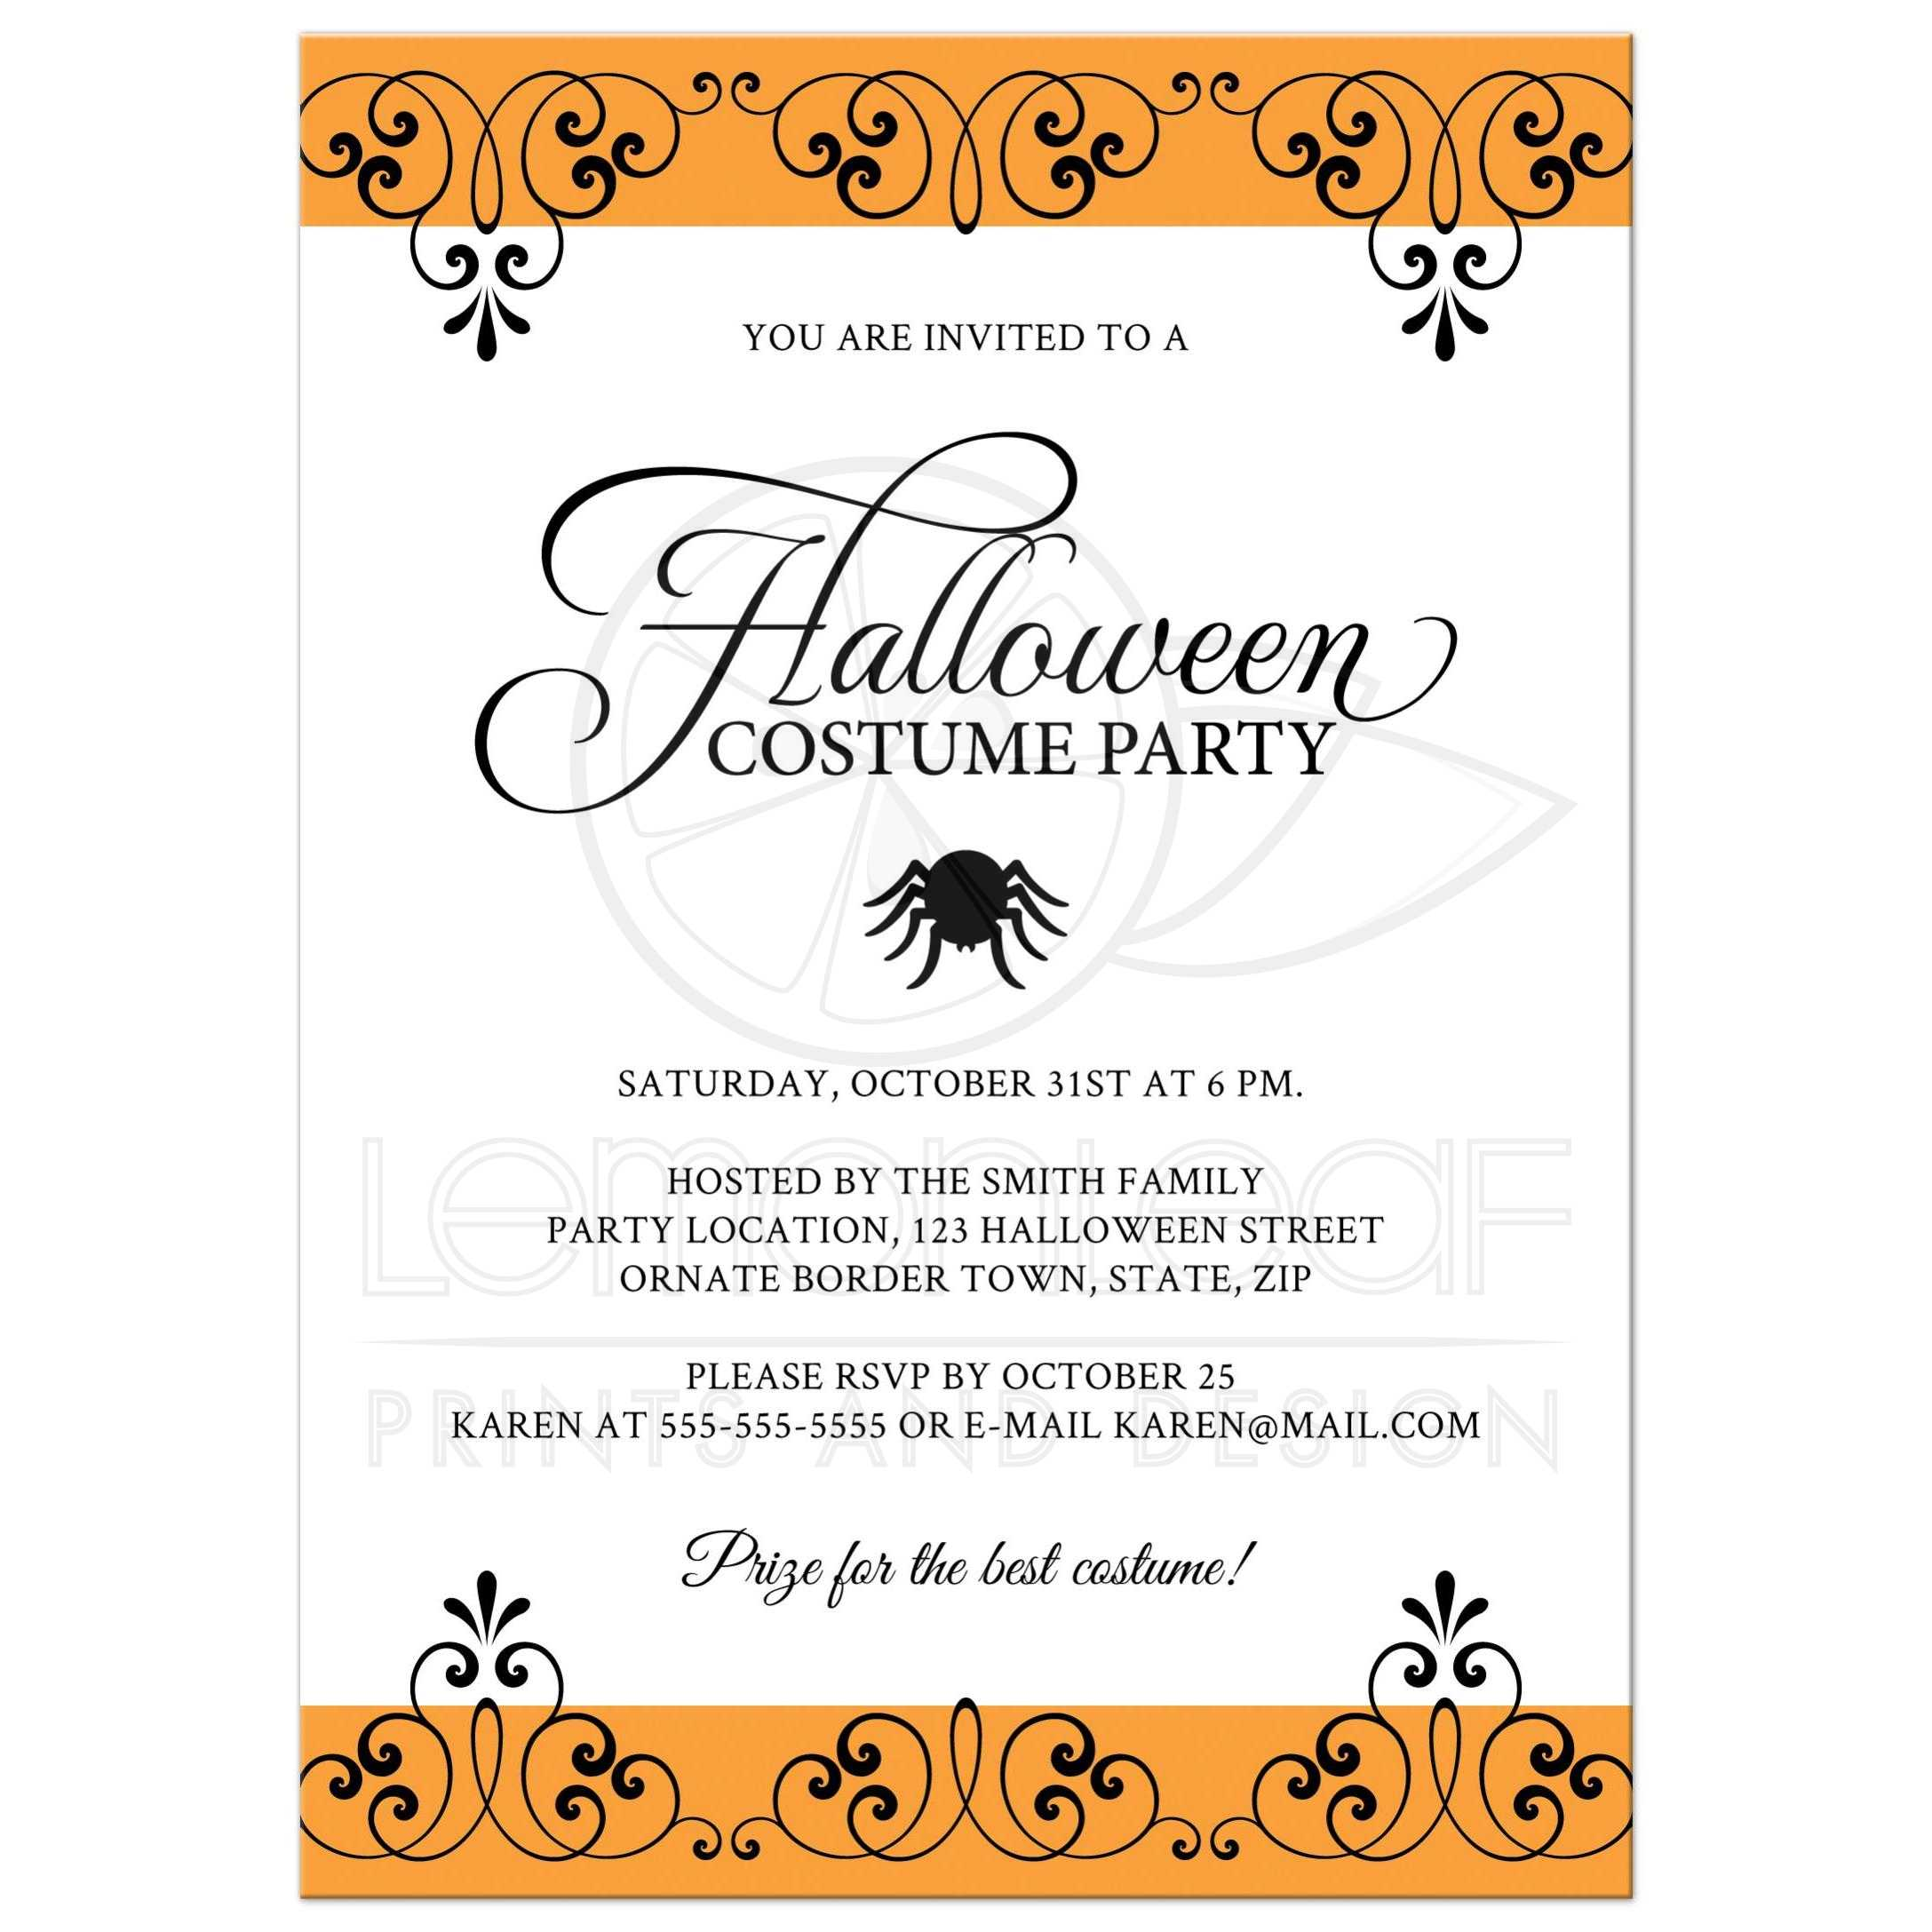 Elegant Halloween costume party invitation with spider and black and orange ornate borders.  sc 1 st  Lemon Leaf Prints & Halloween costume party invitation with ornate black and orange borders